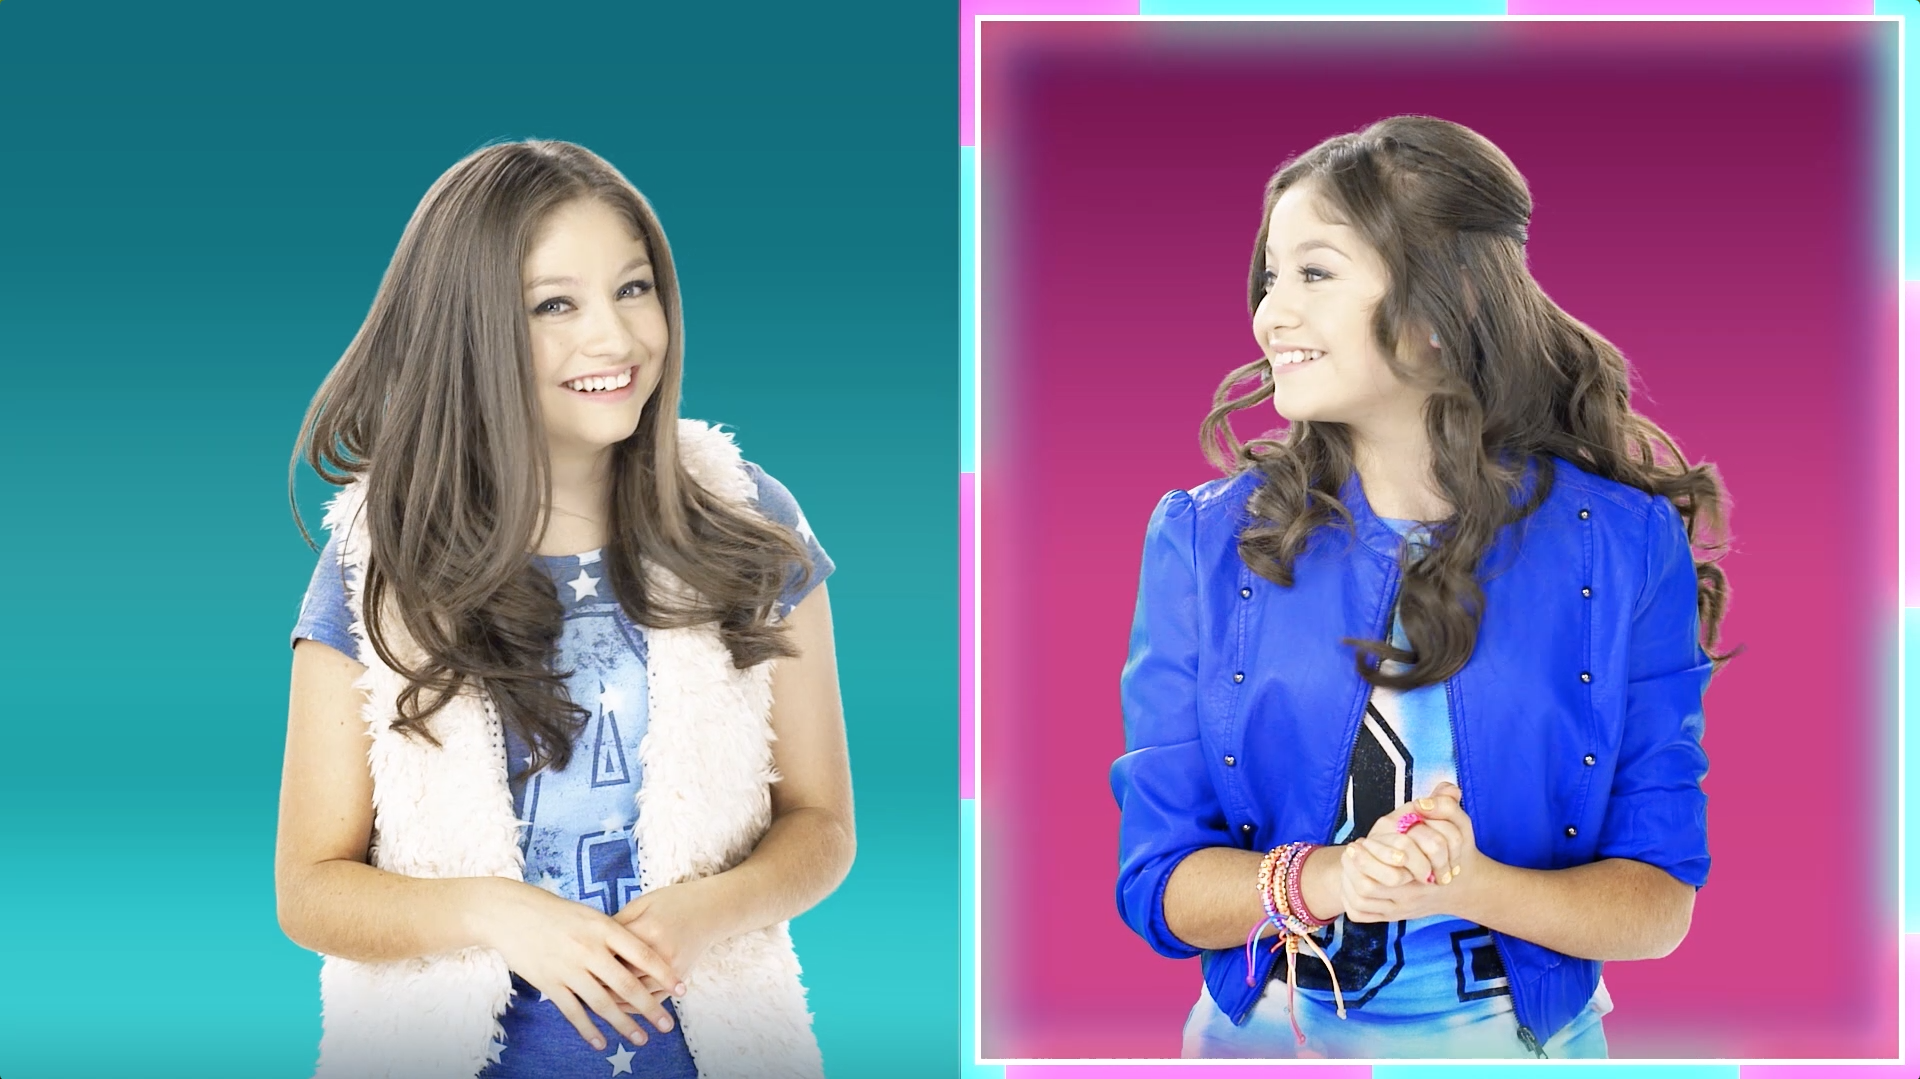 Who is Who? Karol vs. Luna - Soy Luna